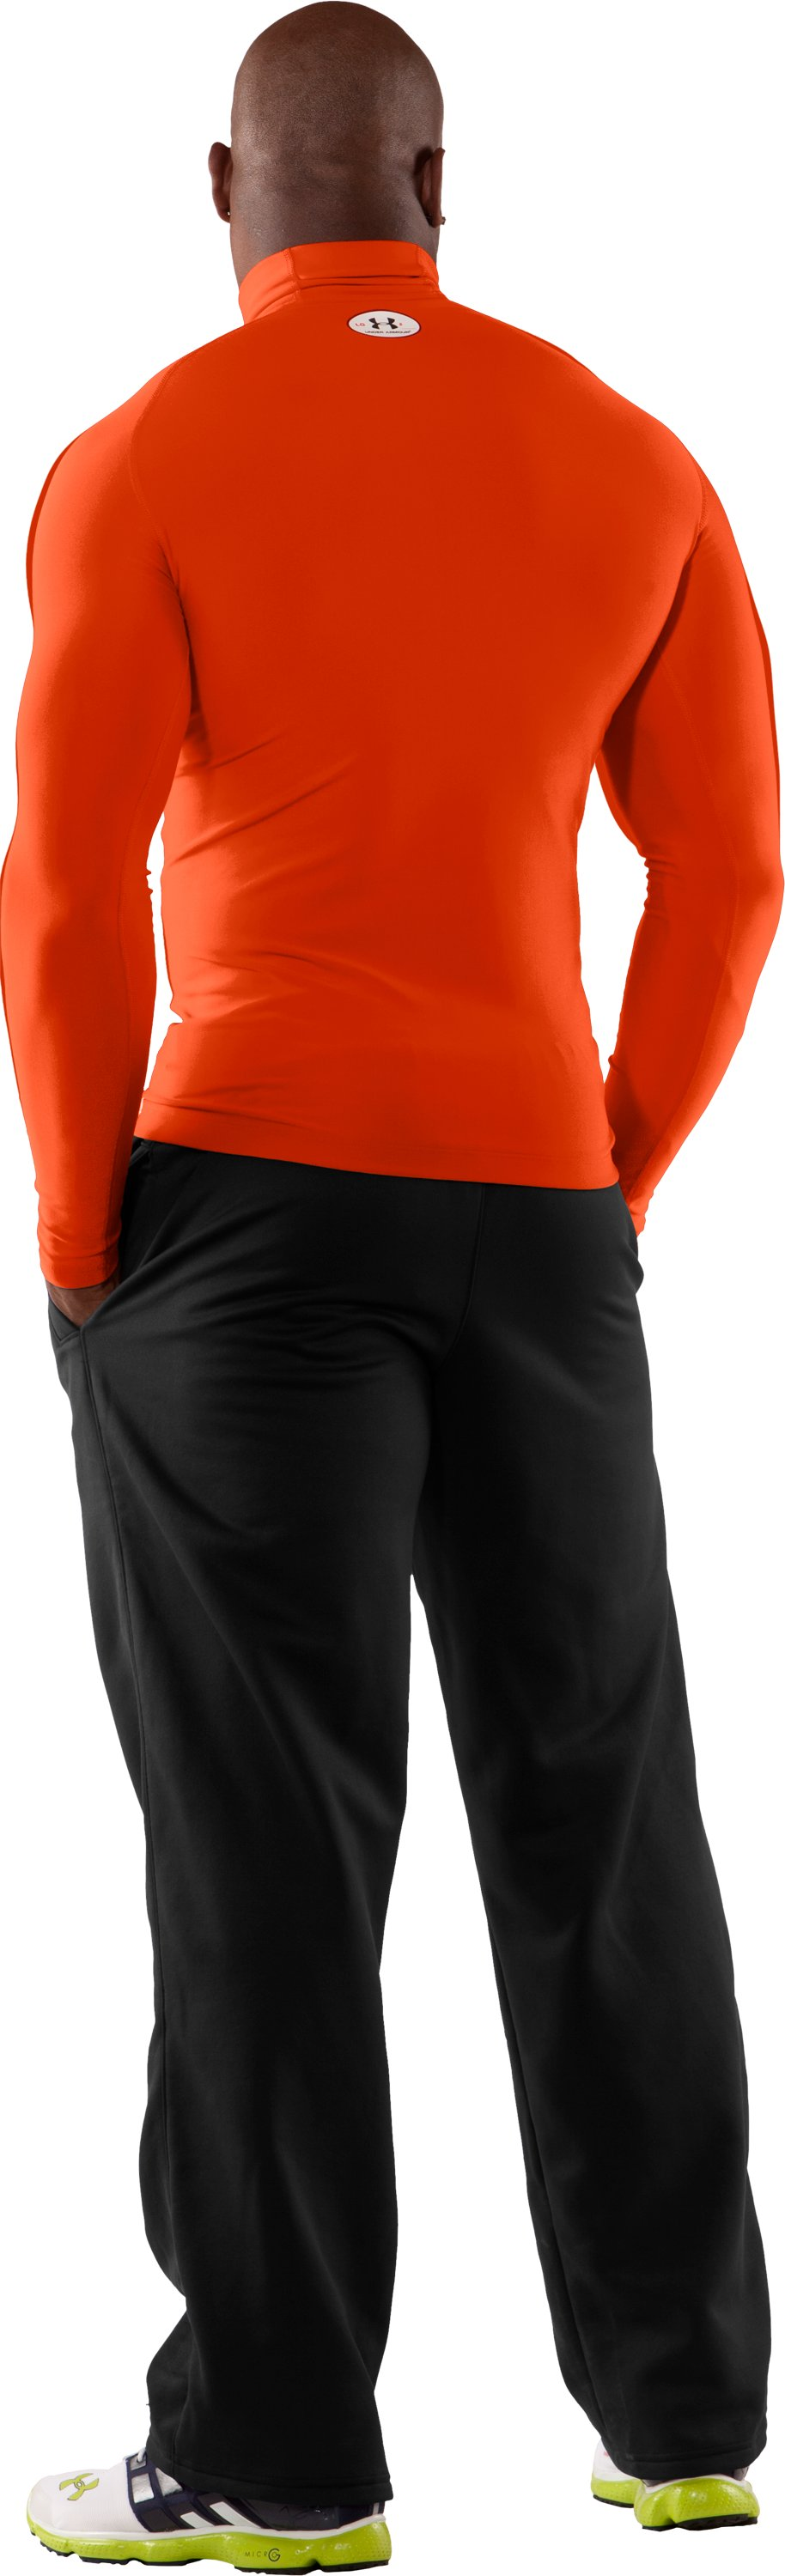 Men's ColdGear® Evo Long Sleeve Compression Mock, Dark Orange, Back